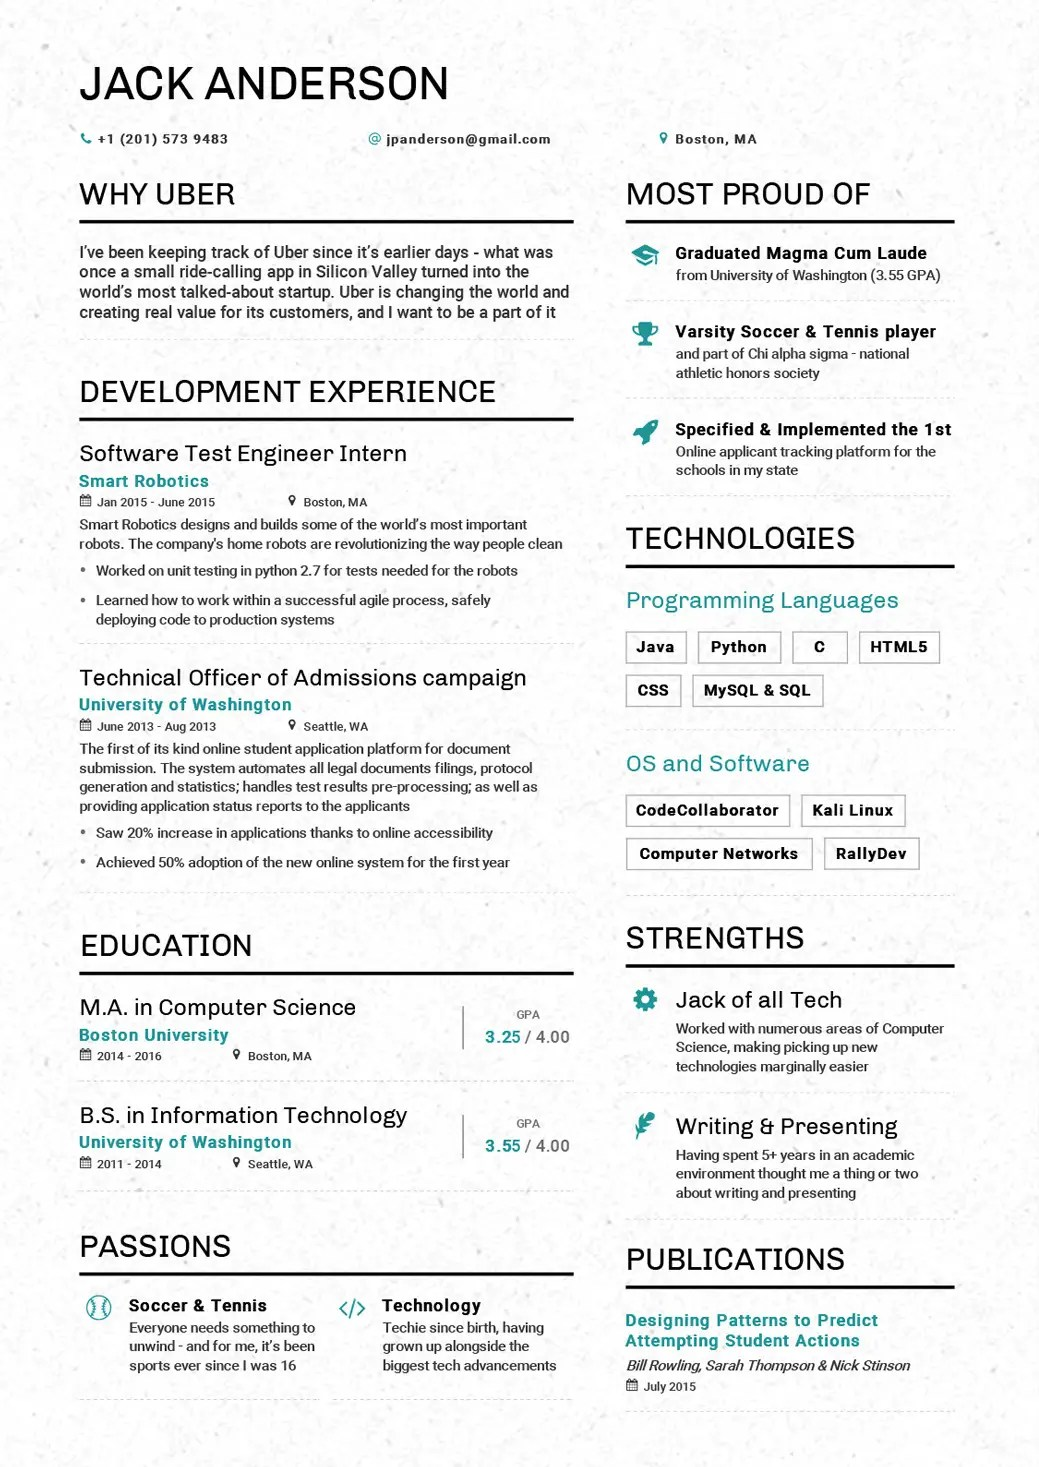 Revised Resume 7 College Grad Resume Mistakes Business Insider